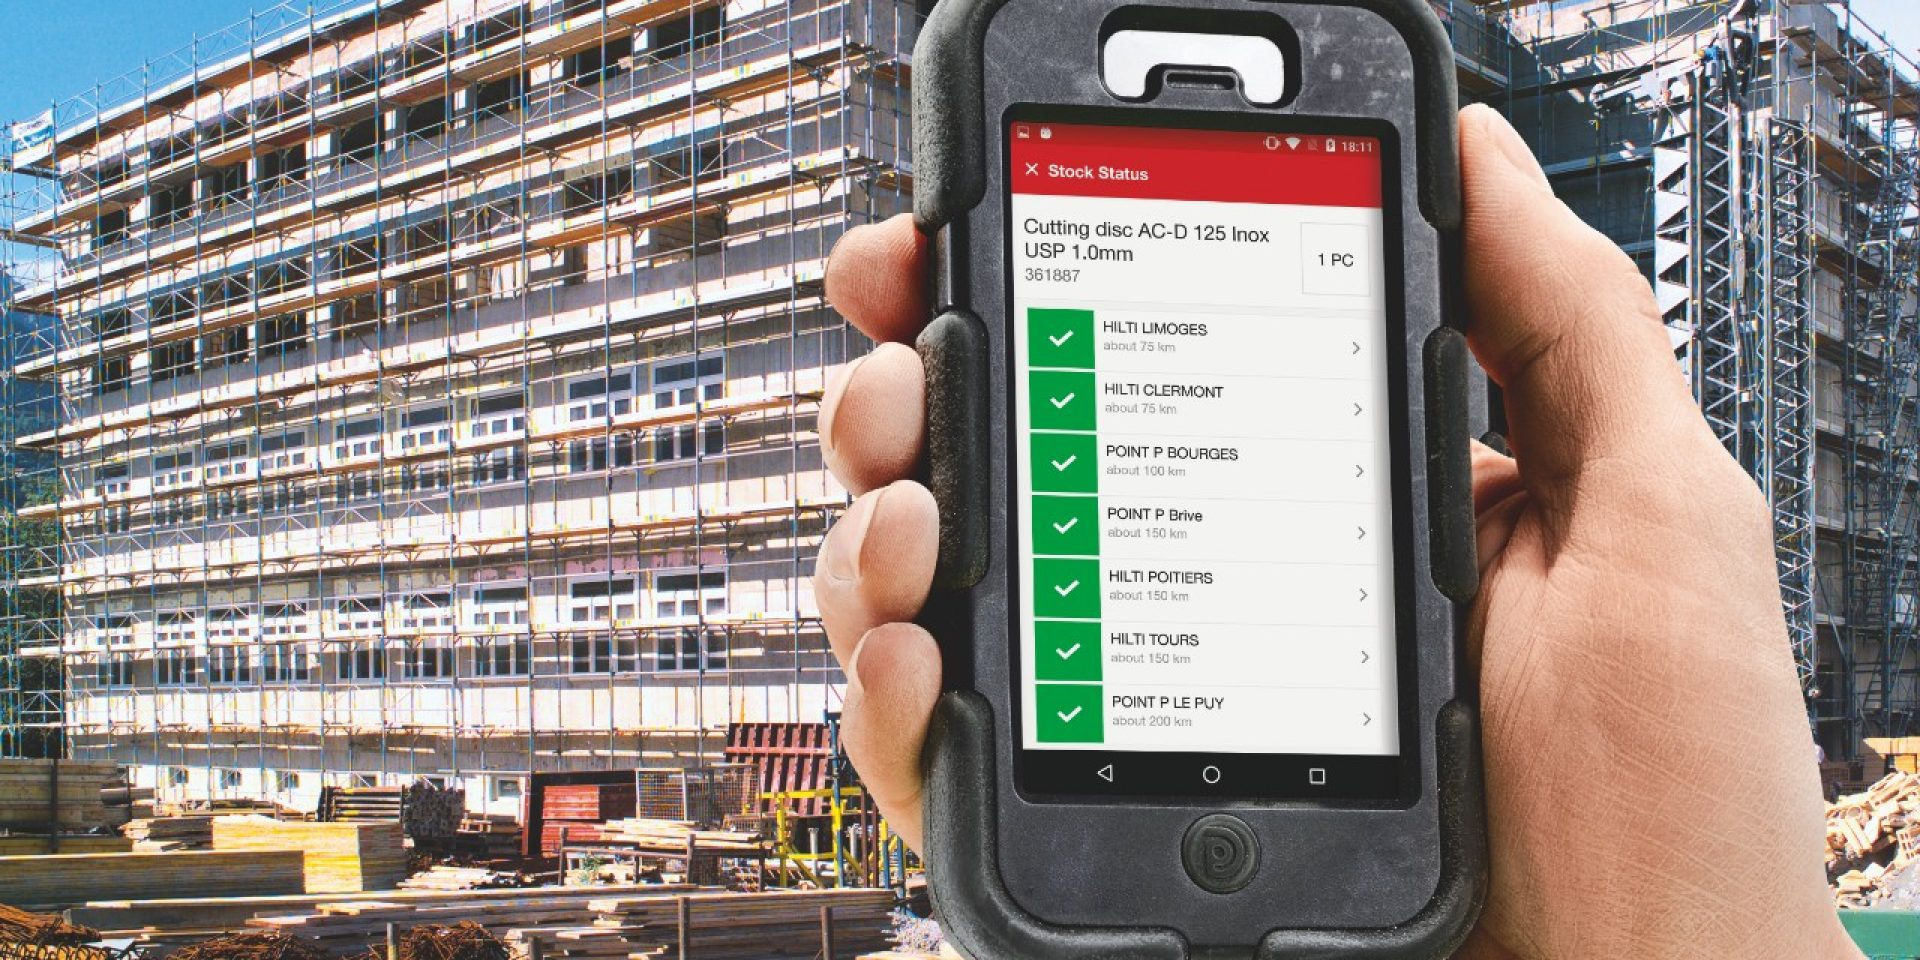 Application Hilti Localisation du Stock